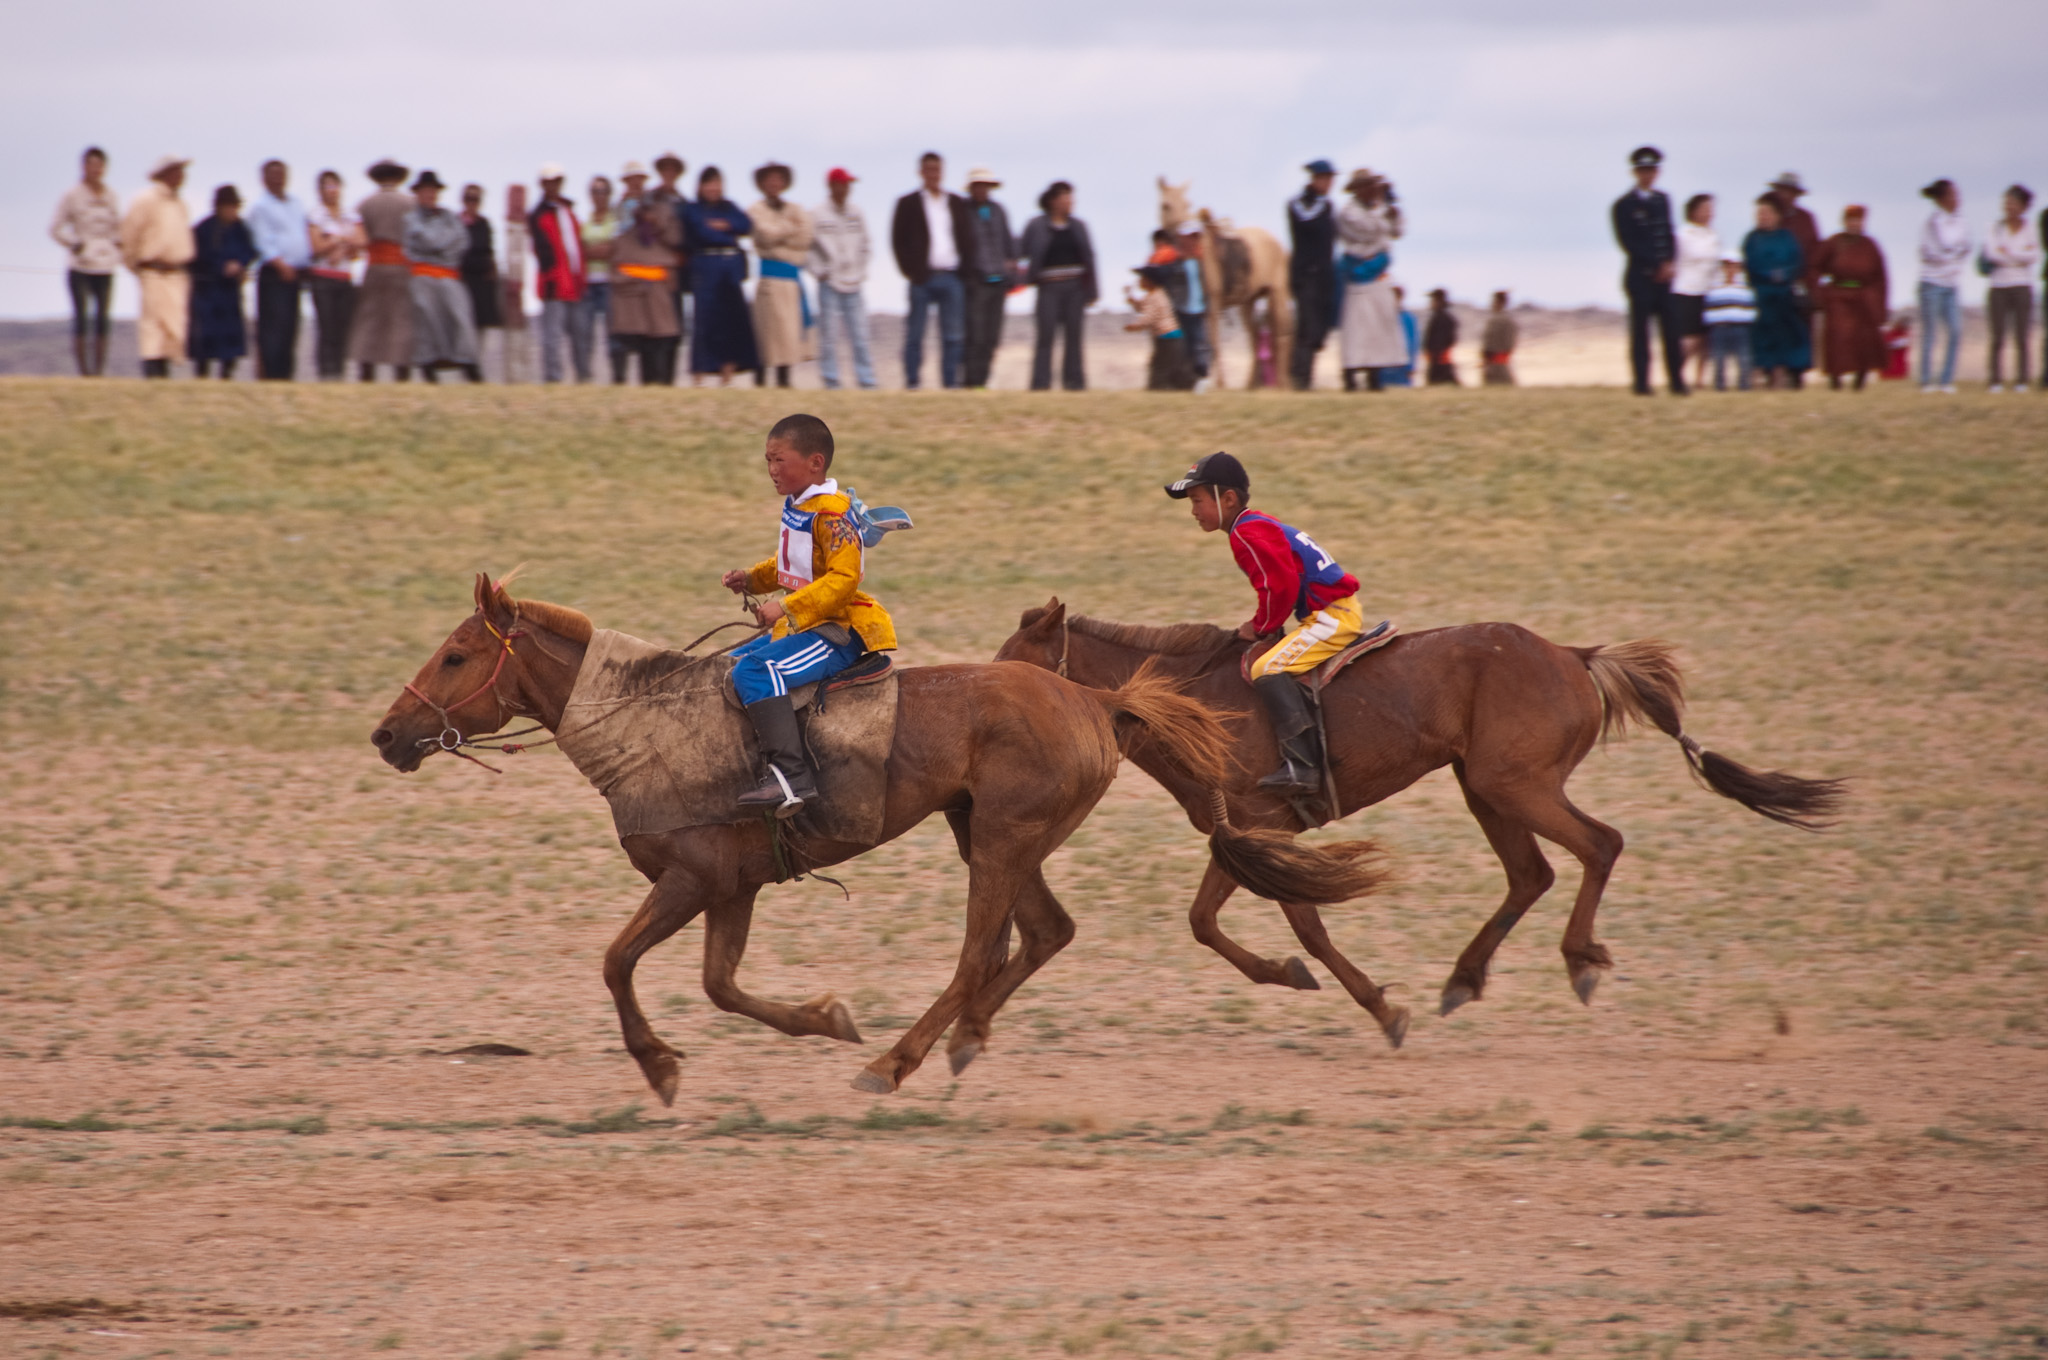 Two young riders race across the finish line (image courtesy of Mark Fischer)